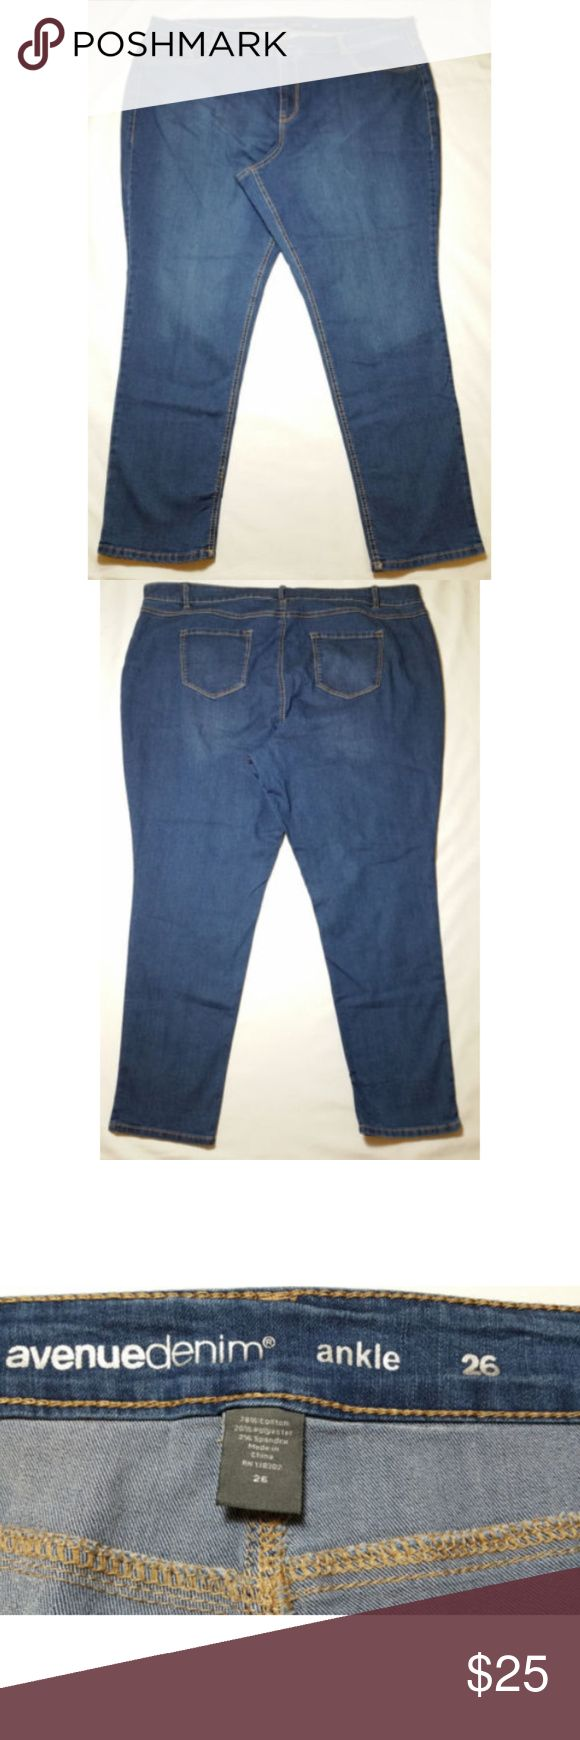 """Avenue Women Jeans Stretch Ankle High Rise 0296 Avenue Women Jeans Stretch Denim Ankle High Rise Blue Plus Size 26 x L29.5  Gently used.  On the back rise and the right leg inseam seams are a little loose, barely noticeable, no holes (see last 2 photos).   - Zipper and button closure. - 5 Pockets. - Medium Wash - 78% Cotton, 20% Polyester, 2% Spandex  Plus Size 26 (see photos for more measurements). Approx. measurements laying flat Waist: 22.5"""" Front Rise: 14.25"""" Inseam: 29.5"""" Ankle Opening…"""